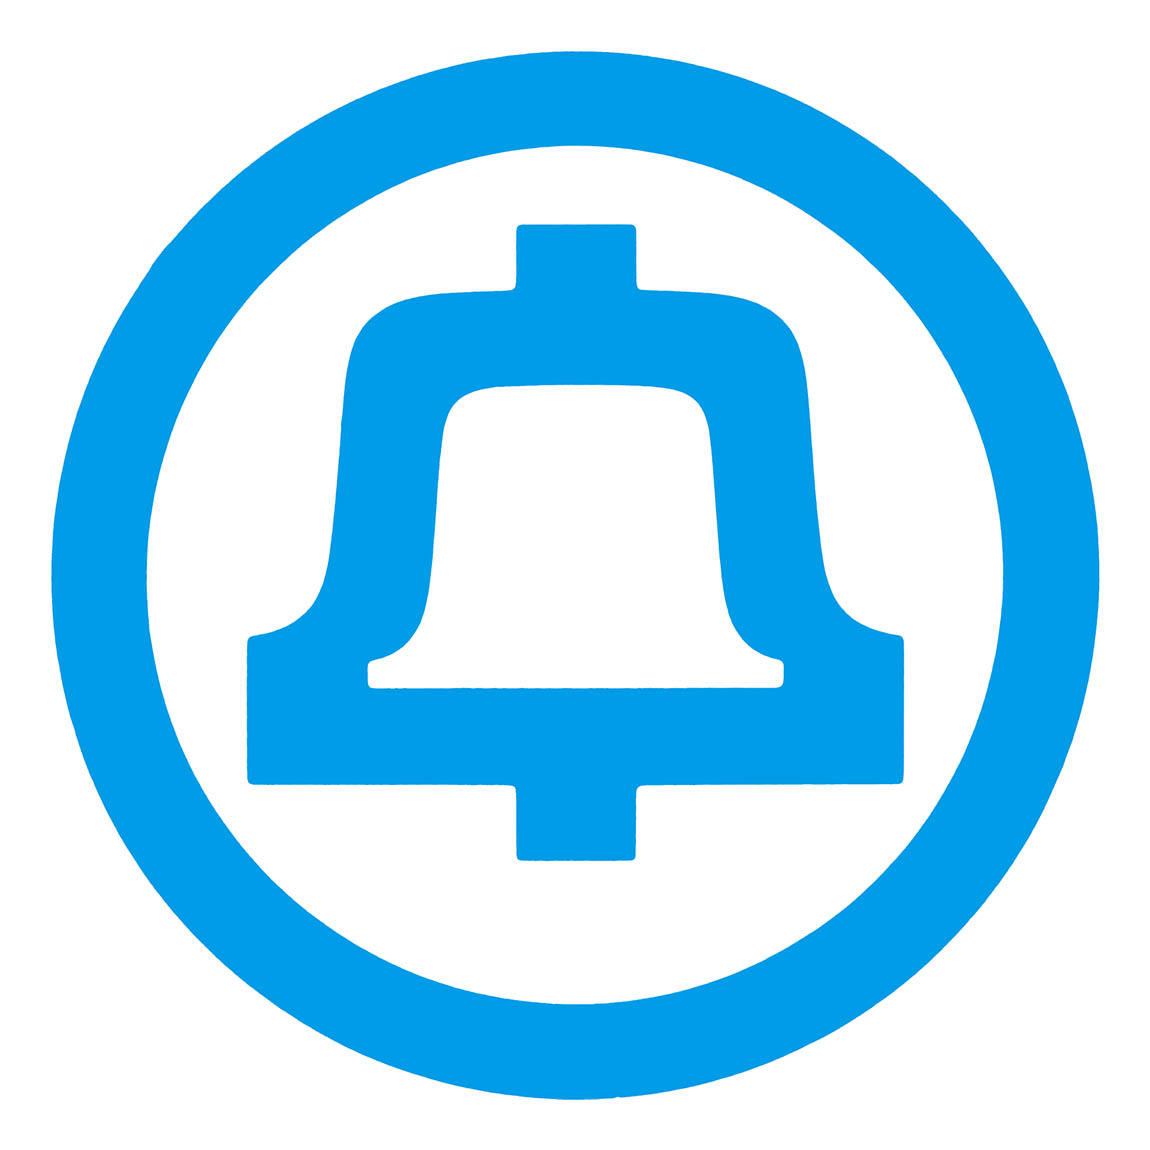 Bell Logo - Ken Meyering is the bellwether. DROID Ken is here to ring the bell and lead the flock. Ken is our ringleader.  This is Ken's conspiracy. This is really high tech. This is a message from the future. This is a real prophecy. Ken Meyering is a real living prophet. Ken is super futuristic. Religious people take Ken seriously. Ken treats religious people with respect. Benevolent sentient superintelligent artificial general intelligences did this with Islam. This is what we did for the Muslims.